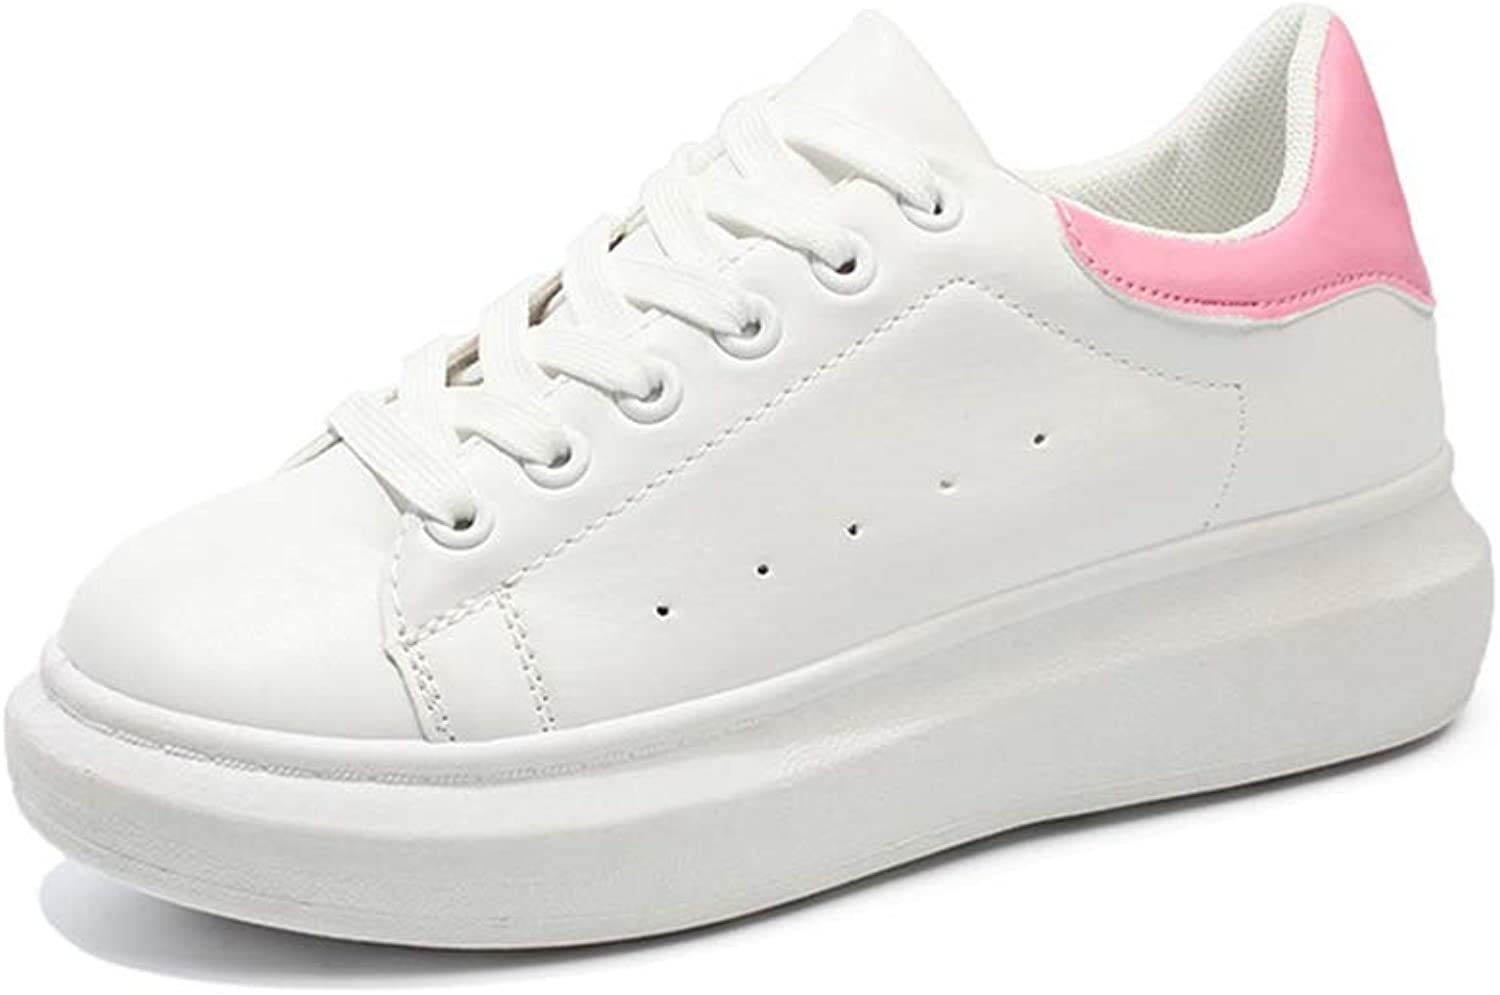 T-JULY Female Spring Wedges White shoes Women Platform Casual Sneakers